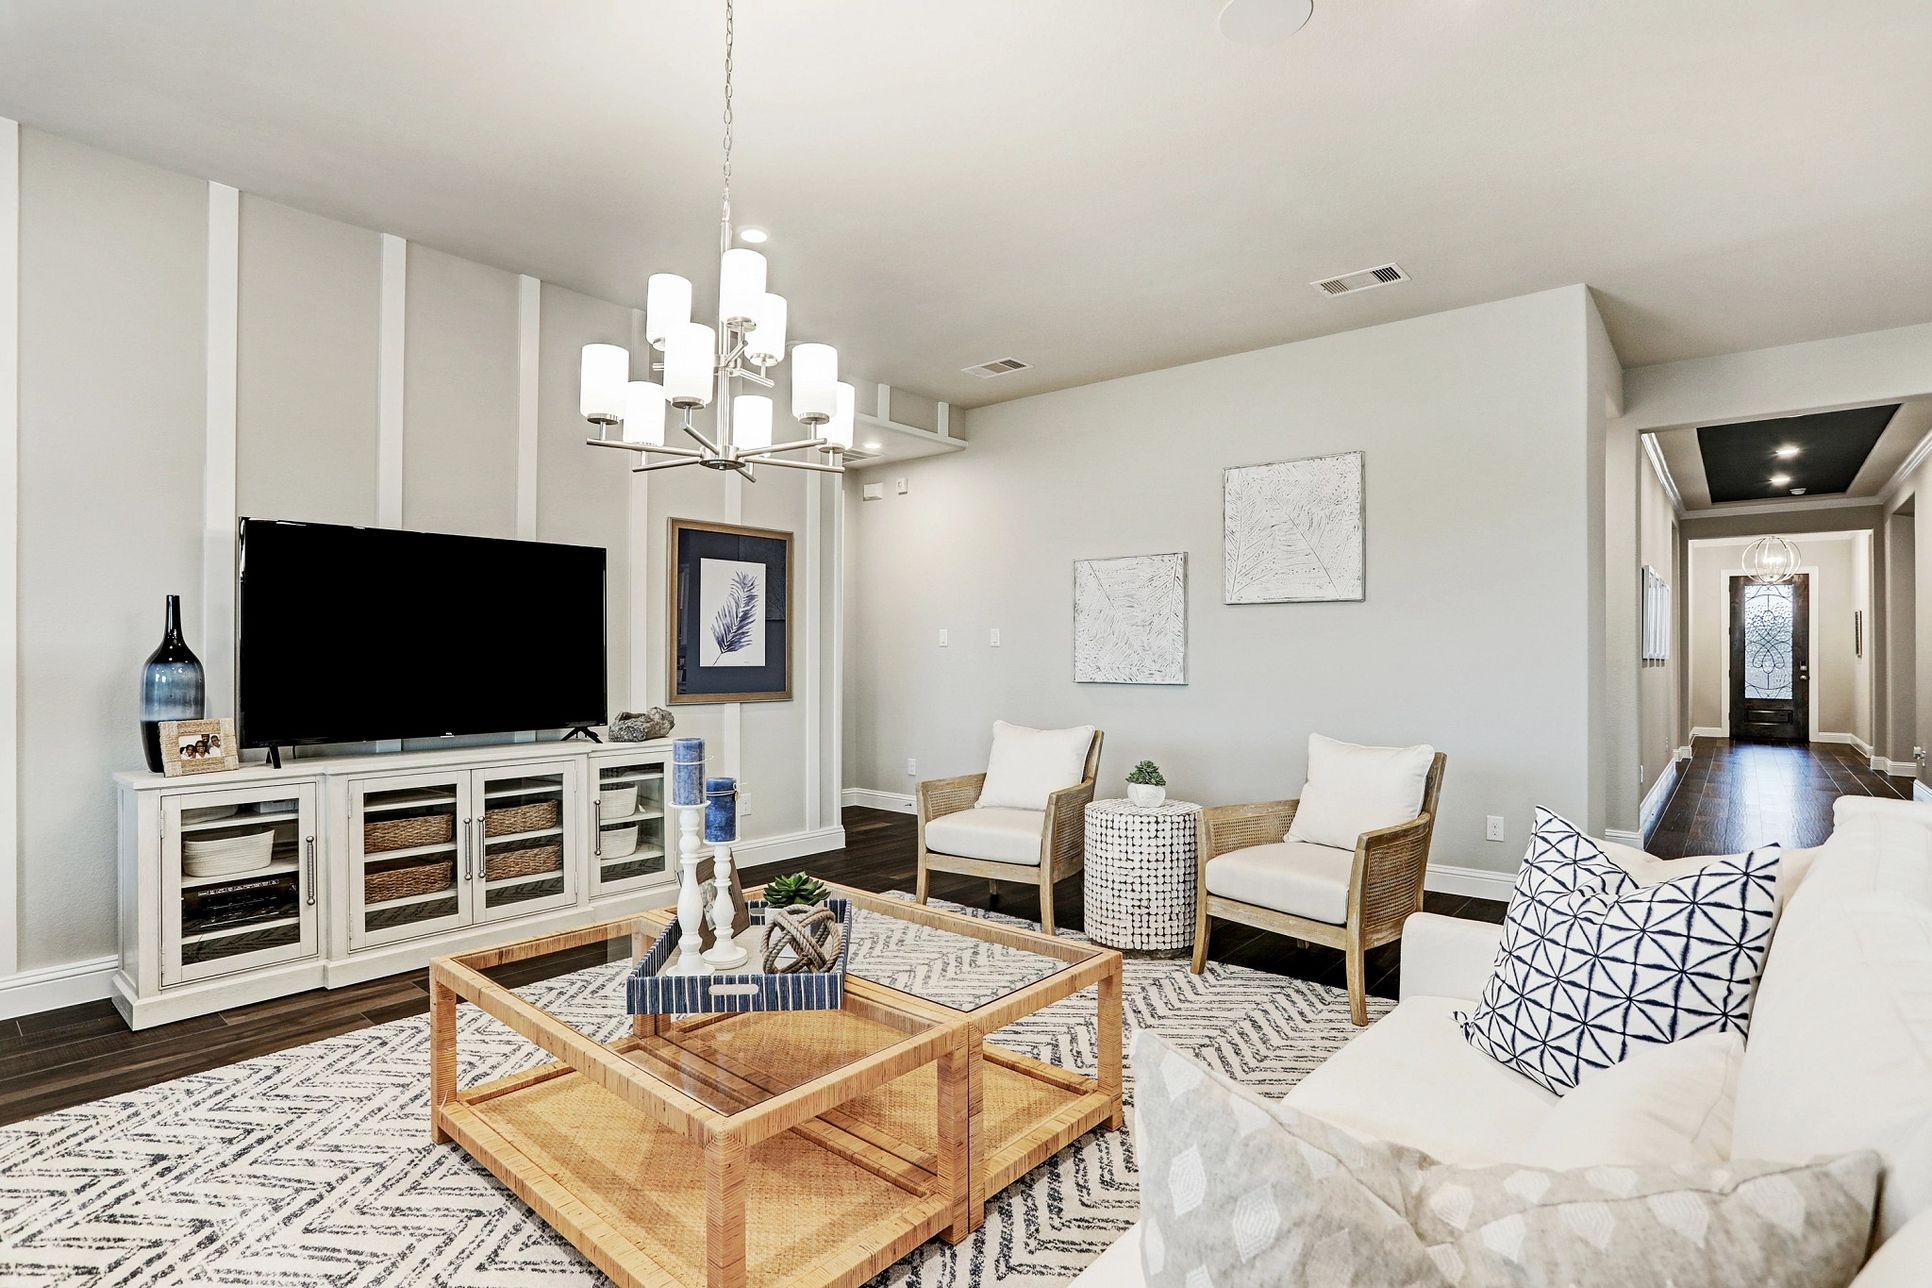 Plan 5029 Living Room Modeled at Del Bello Lakes